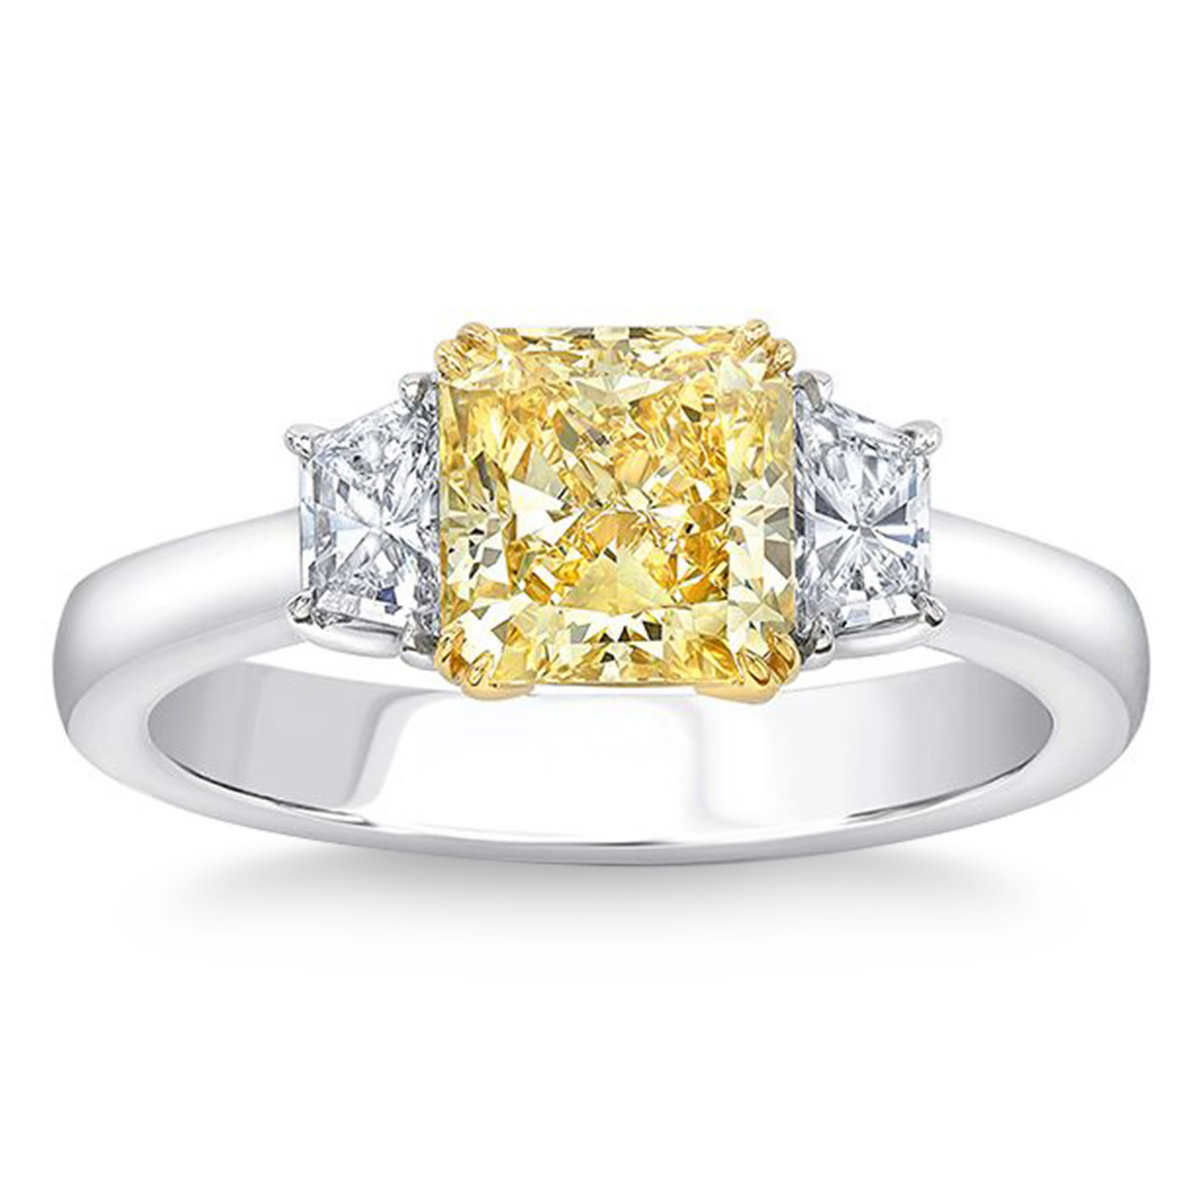 rings wedding rings dollars Radiant Cut 2 53 ct VVS2 Clarity Fancy Vivid Yellow Diamond Platinum 2 93 ctw Ring